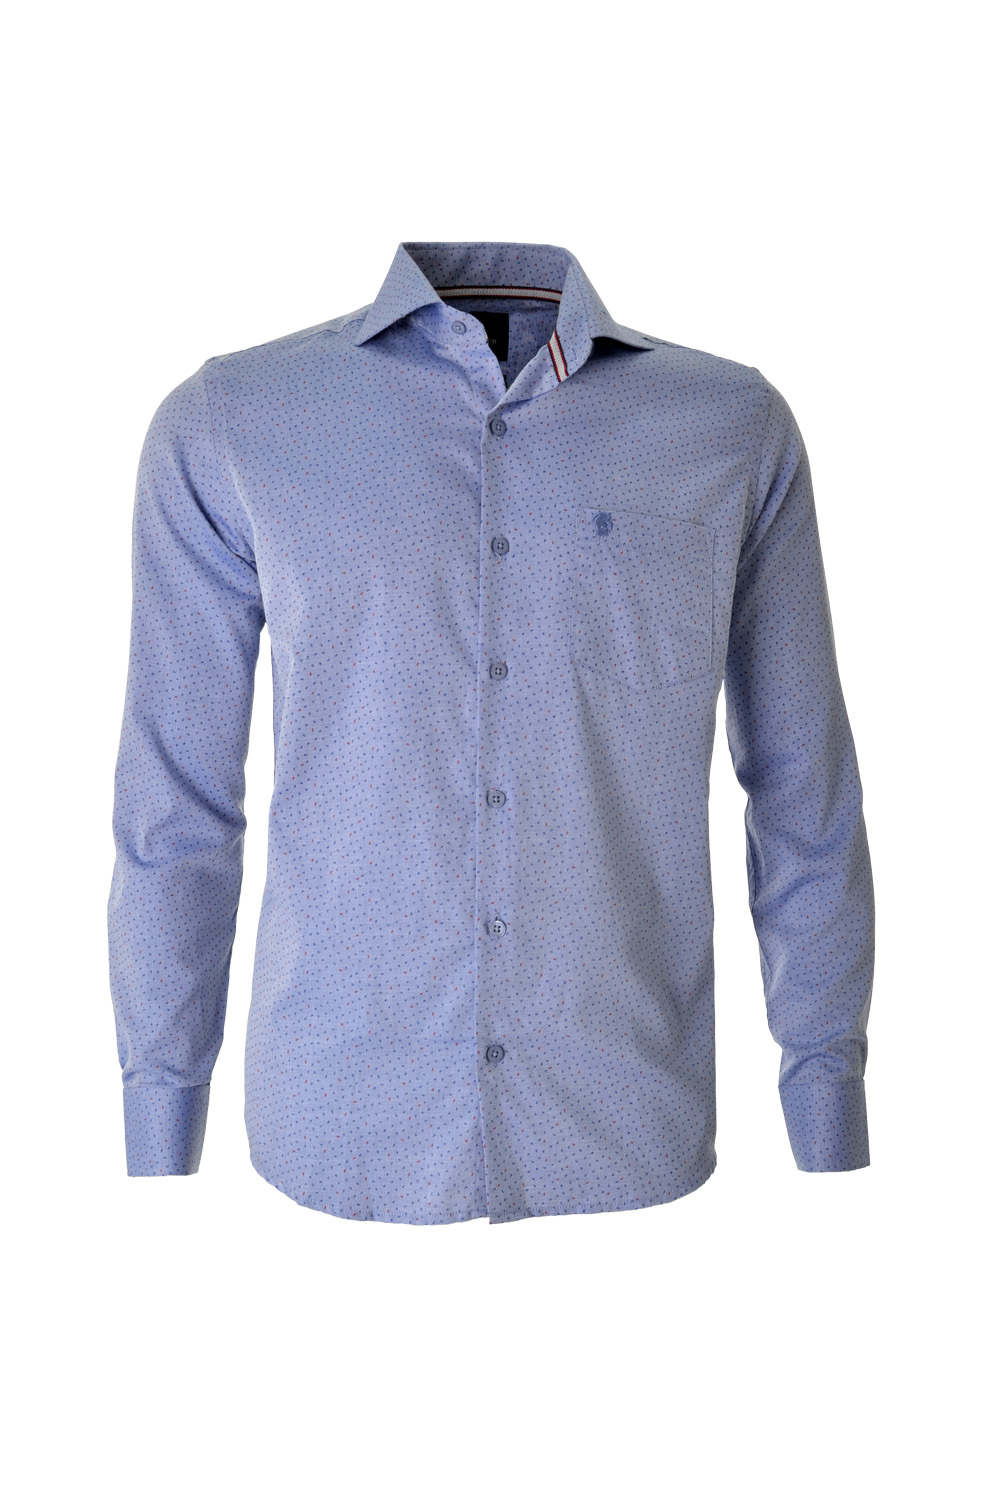 CAMISA ML FASHION SLIM ALGODAO FIO TINTO ESTAMPA AZUL CLARO